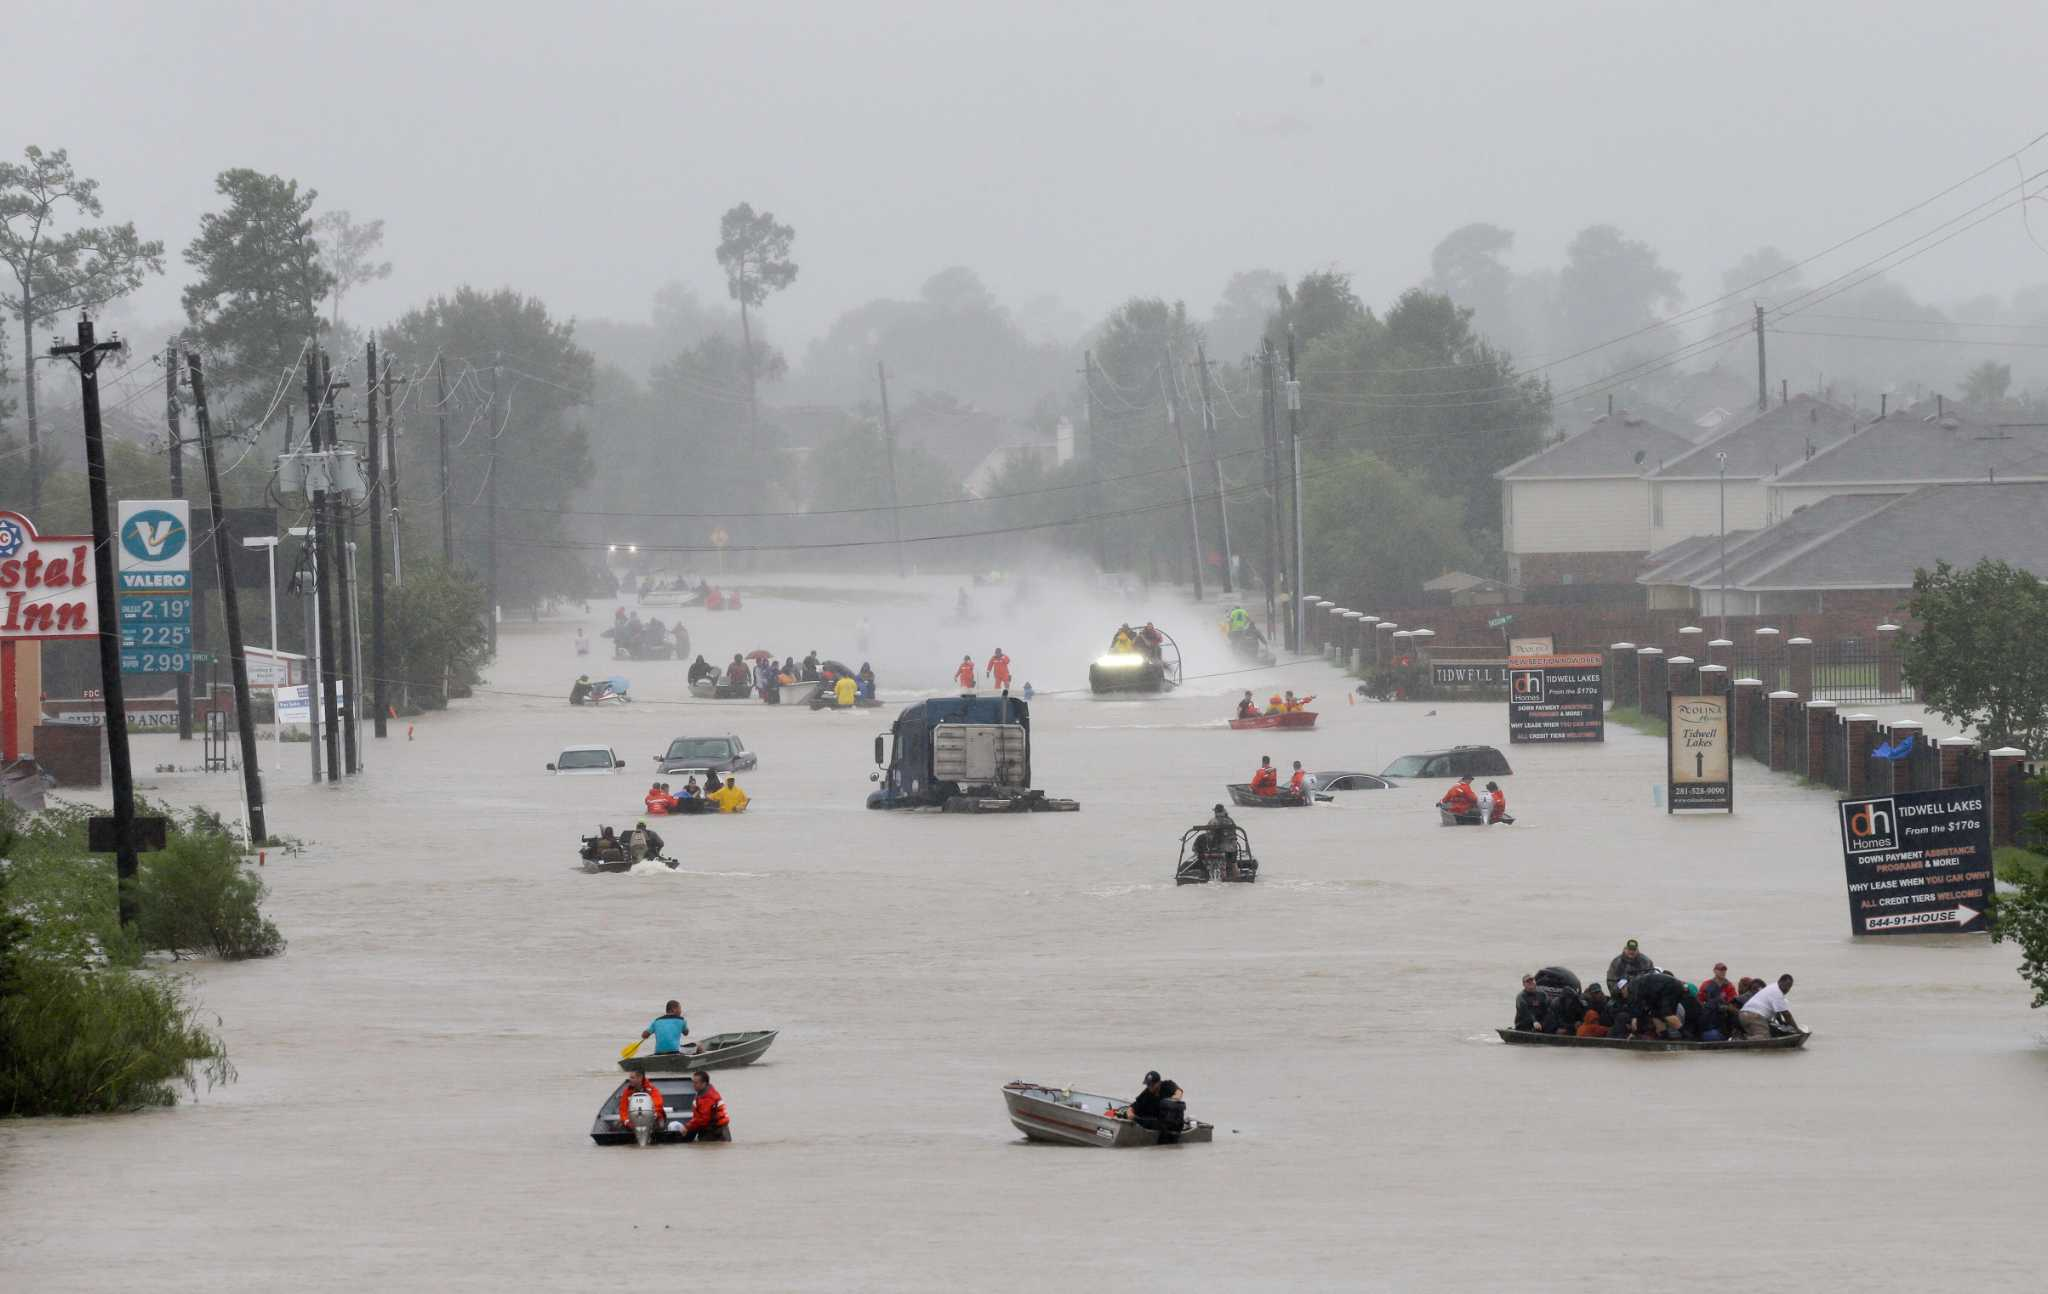 Rescue boats work along Tidwell at the east Sam Houston Tollway helping to evacuate people on August 28, 2017. Climate change has become a matter of risk managment.